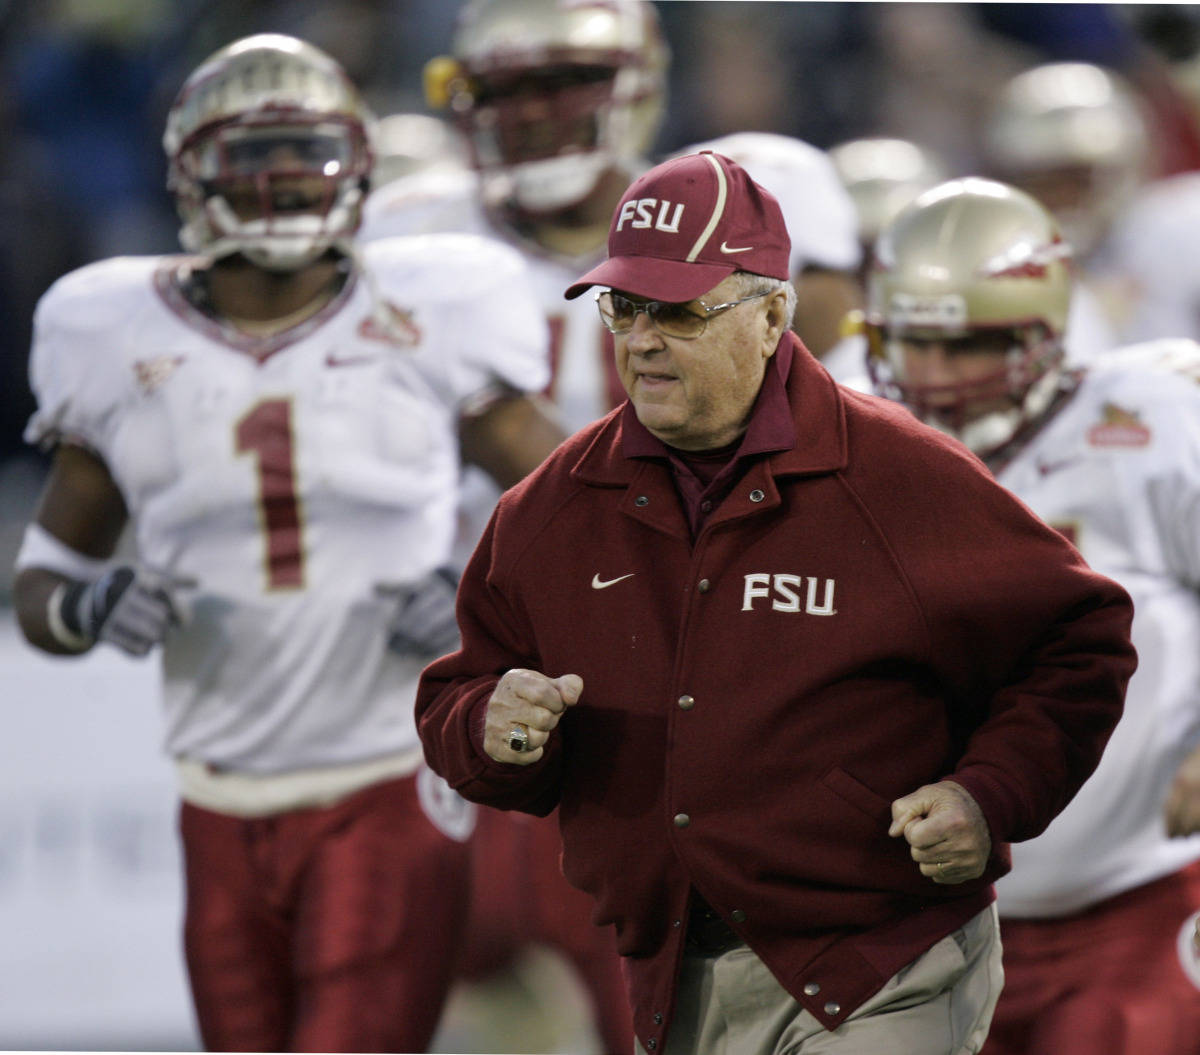 Florida State head coach Bobby Bowden runs unto the field with his team as they get ready to play UCLA at the start the Emerald Bowl college football game in San Francisco, Wednesday, Dec. 27, 2006.(AP Photo/Marcio Jose Sanchez)